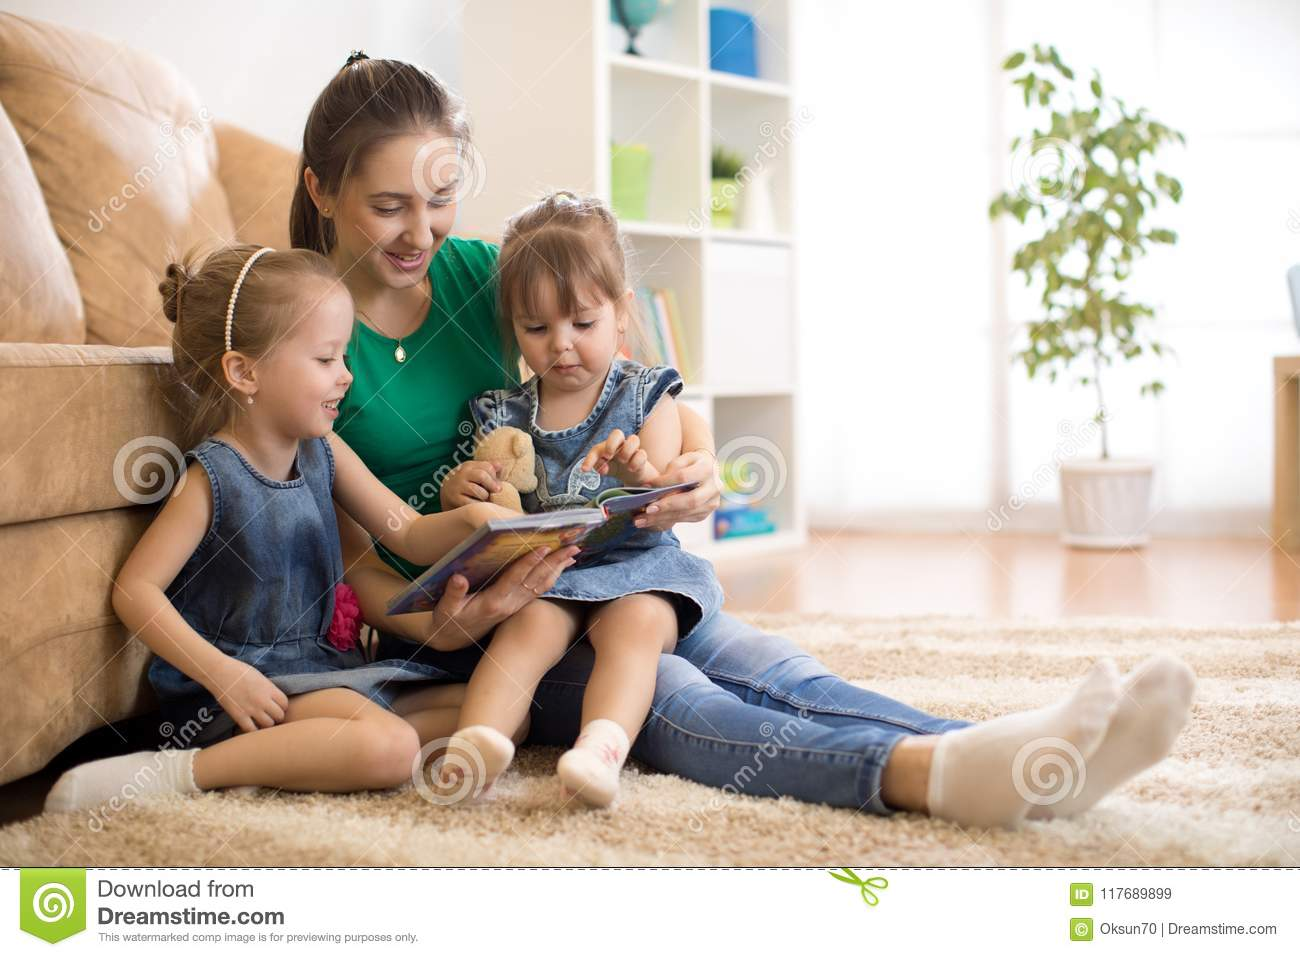 Happy mother and little daughters reading a book together in the living room at home. Family activity concept.